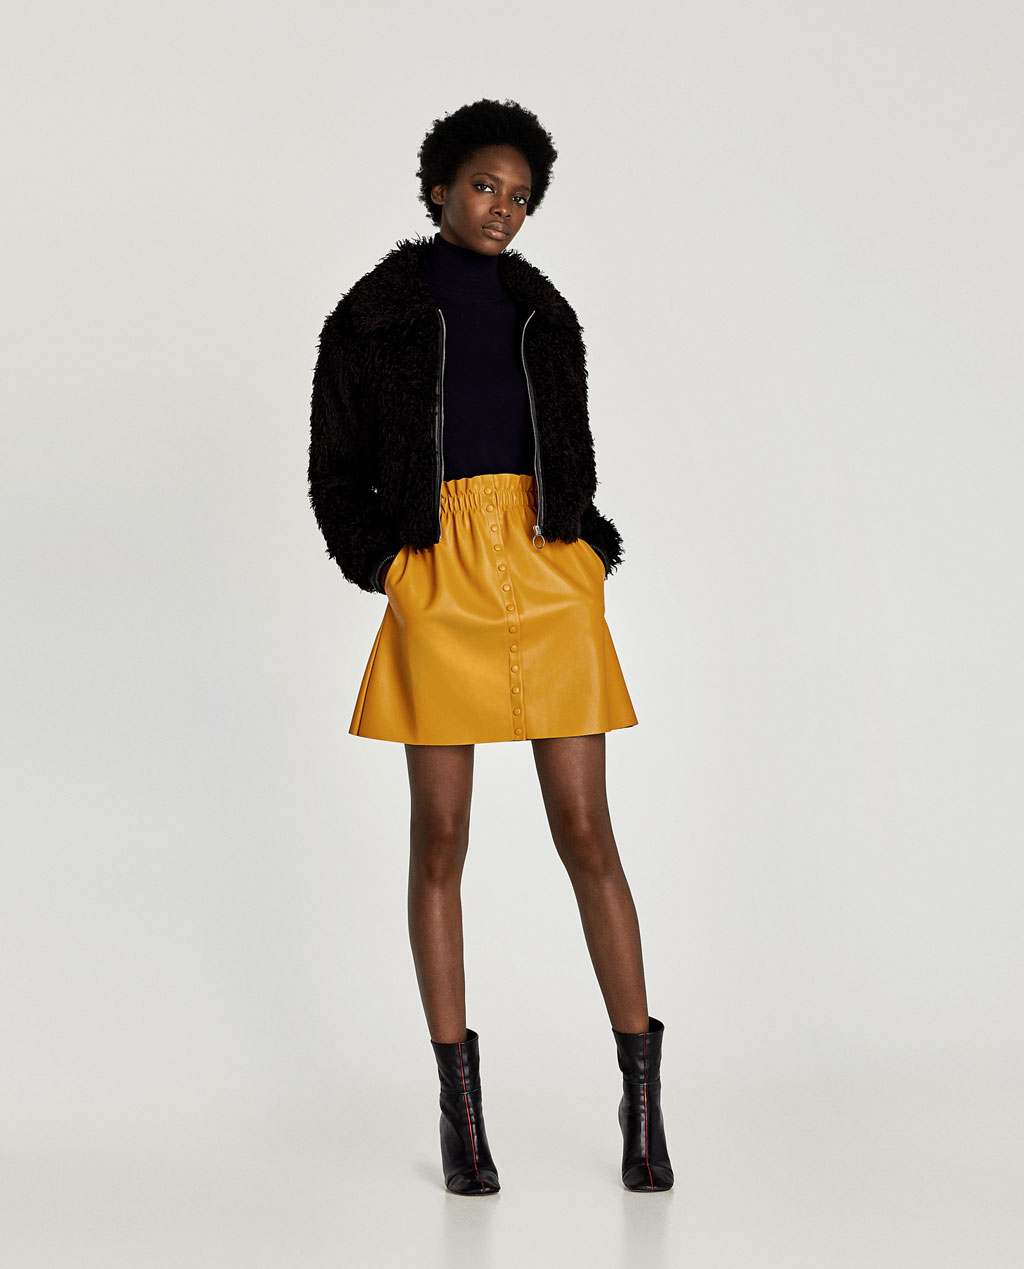 Zara Mustard Yellow Mini Skirt.jpg